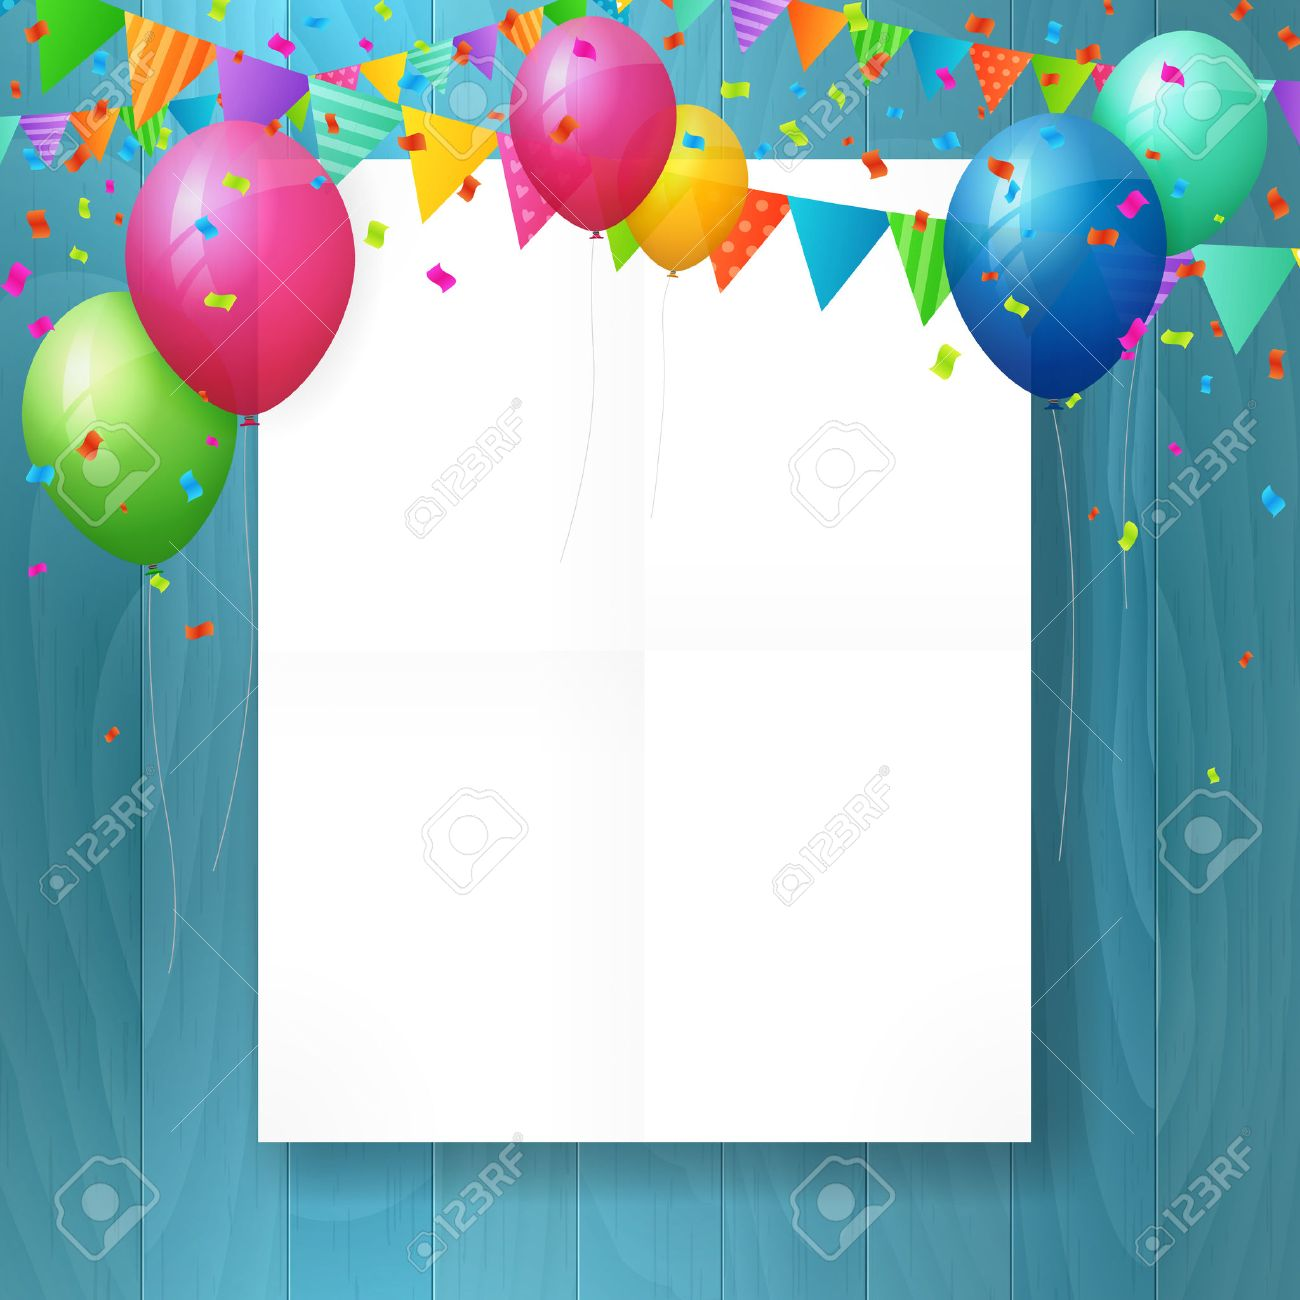 Empty happy birthday greeting card with balloons and flags on empty happy birthday greeting card with balloons and flags on wood background stock vector m4hsunfo